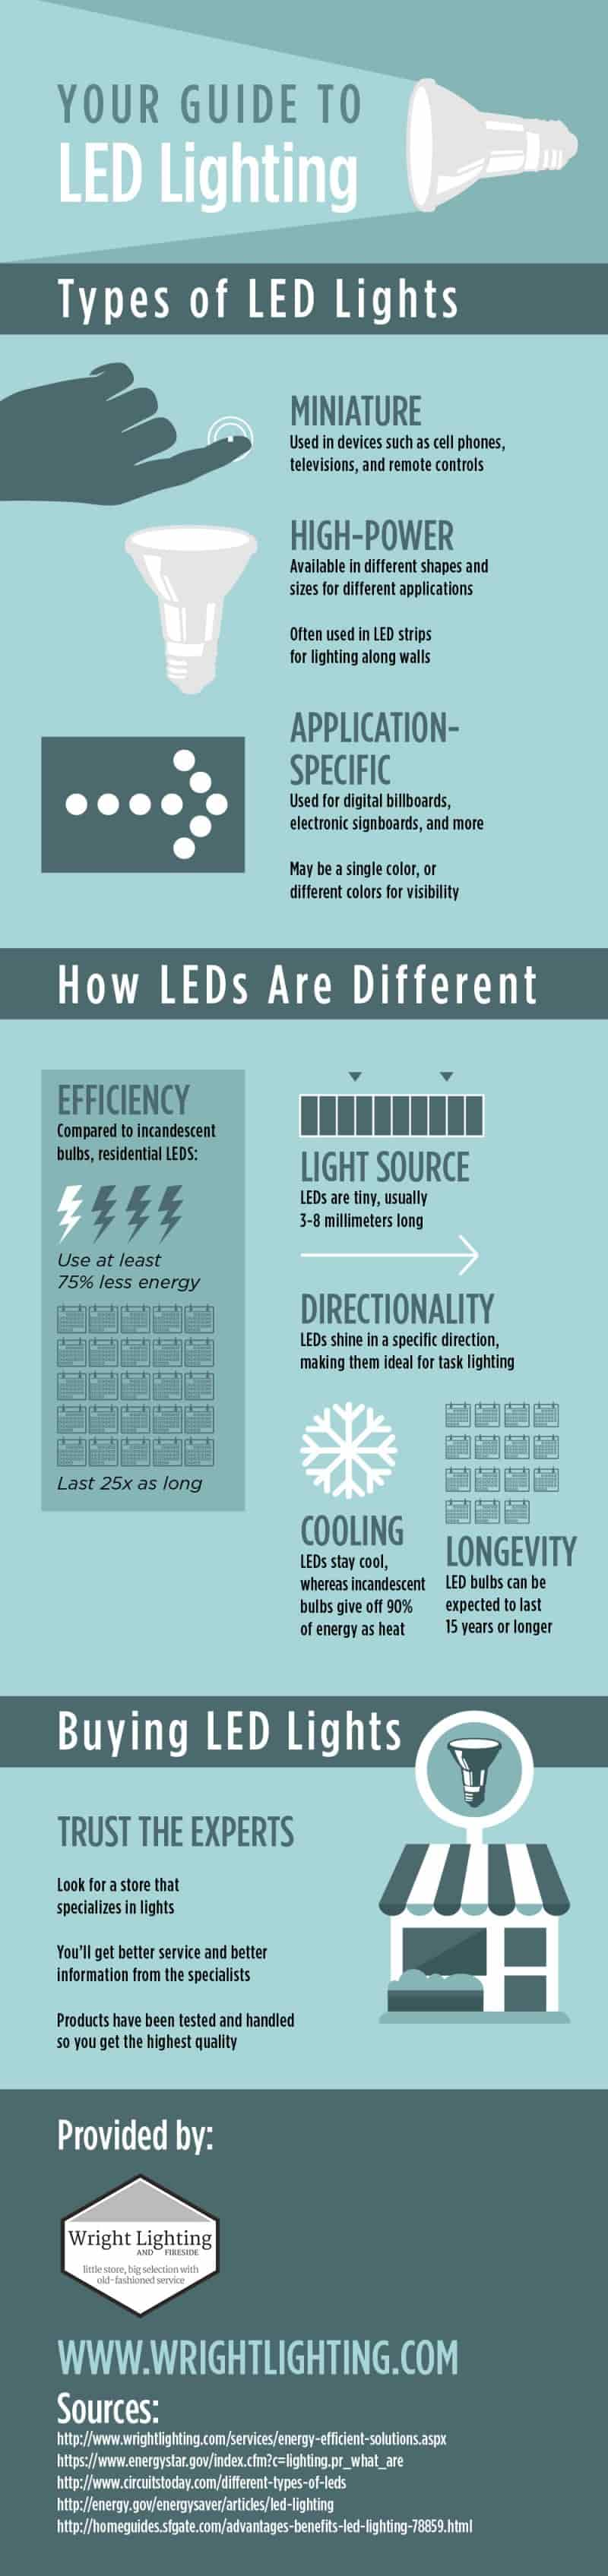 Your Guide To Led Lighting #infographic